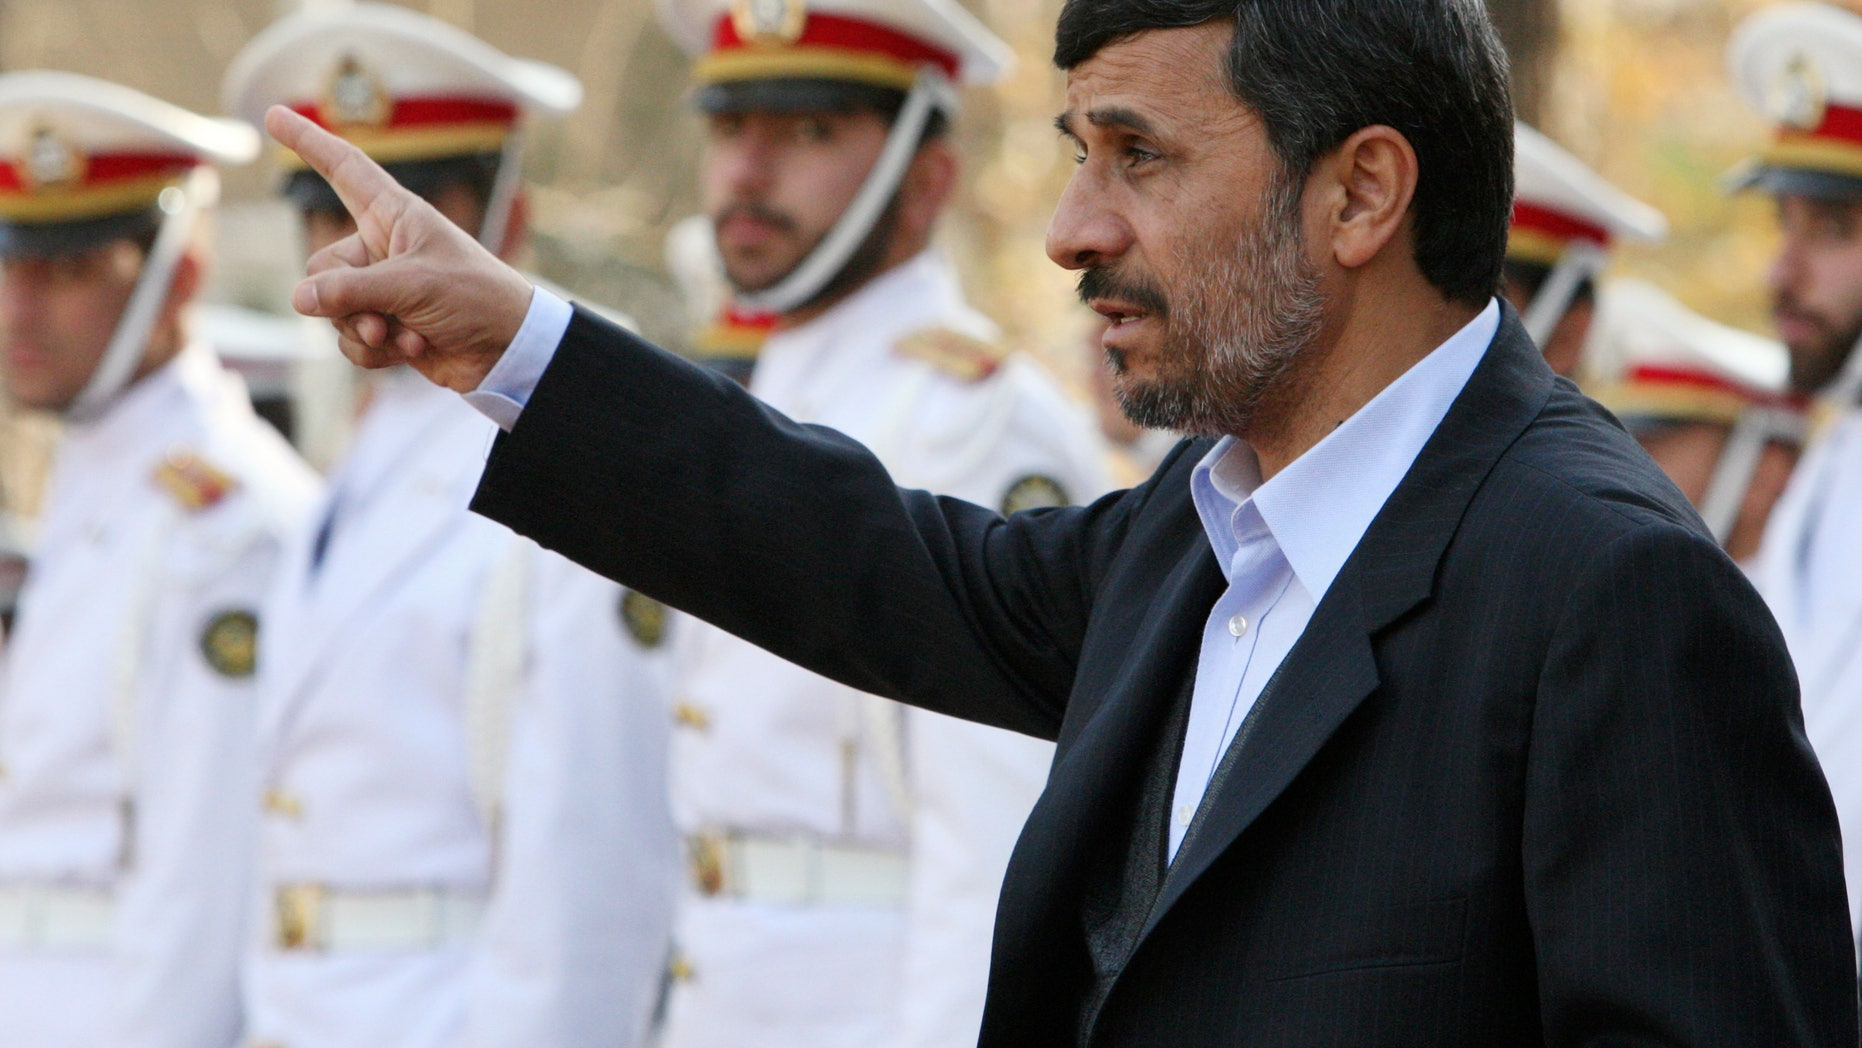 Iranian president Ahmadinejad shown here in Tehran, Iran Dec. 20 said Dec. 28 that the West's hostile policies could harm further talks over the country's disputed nuclear program.